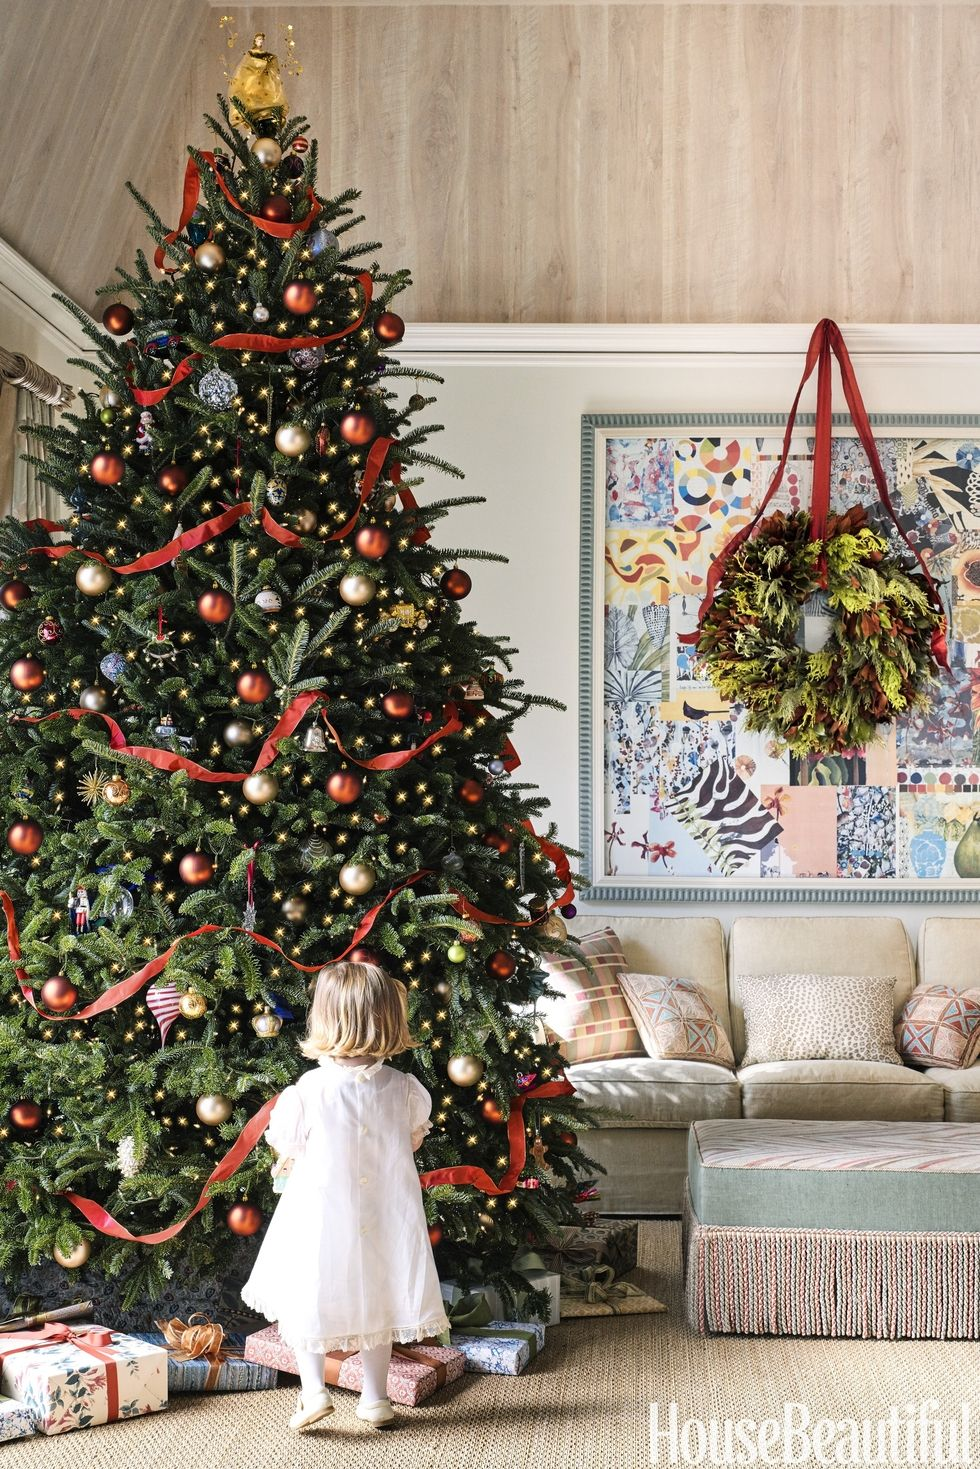 Christmas Tree Decorations Ideas - House Beautiful - Annie Schlechter - Catherine Olasky Tree - elegant christmas trees - Christmas trees with red ribbons